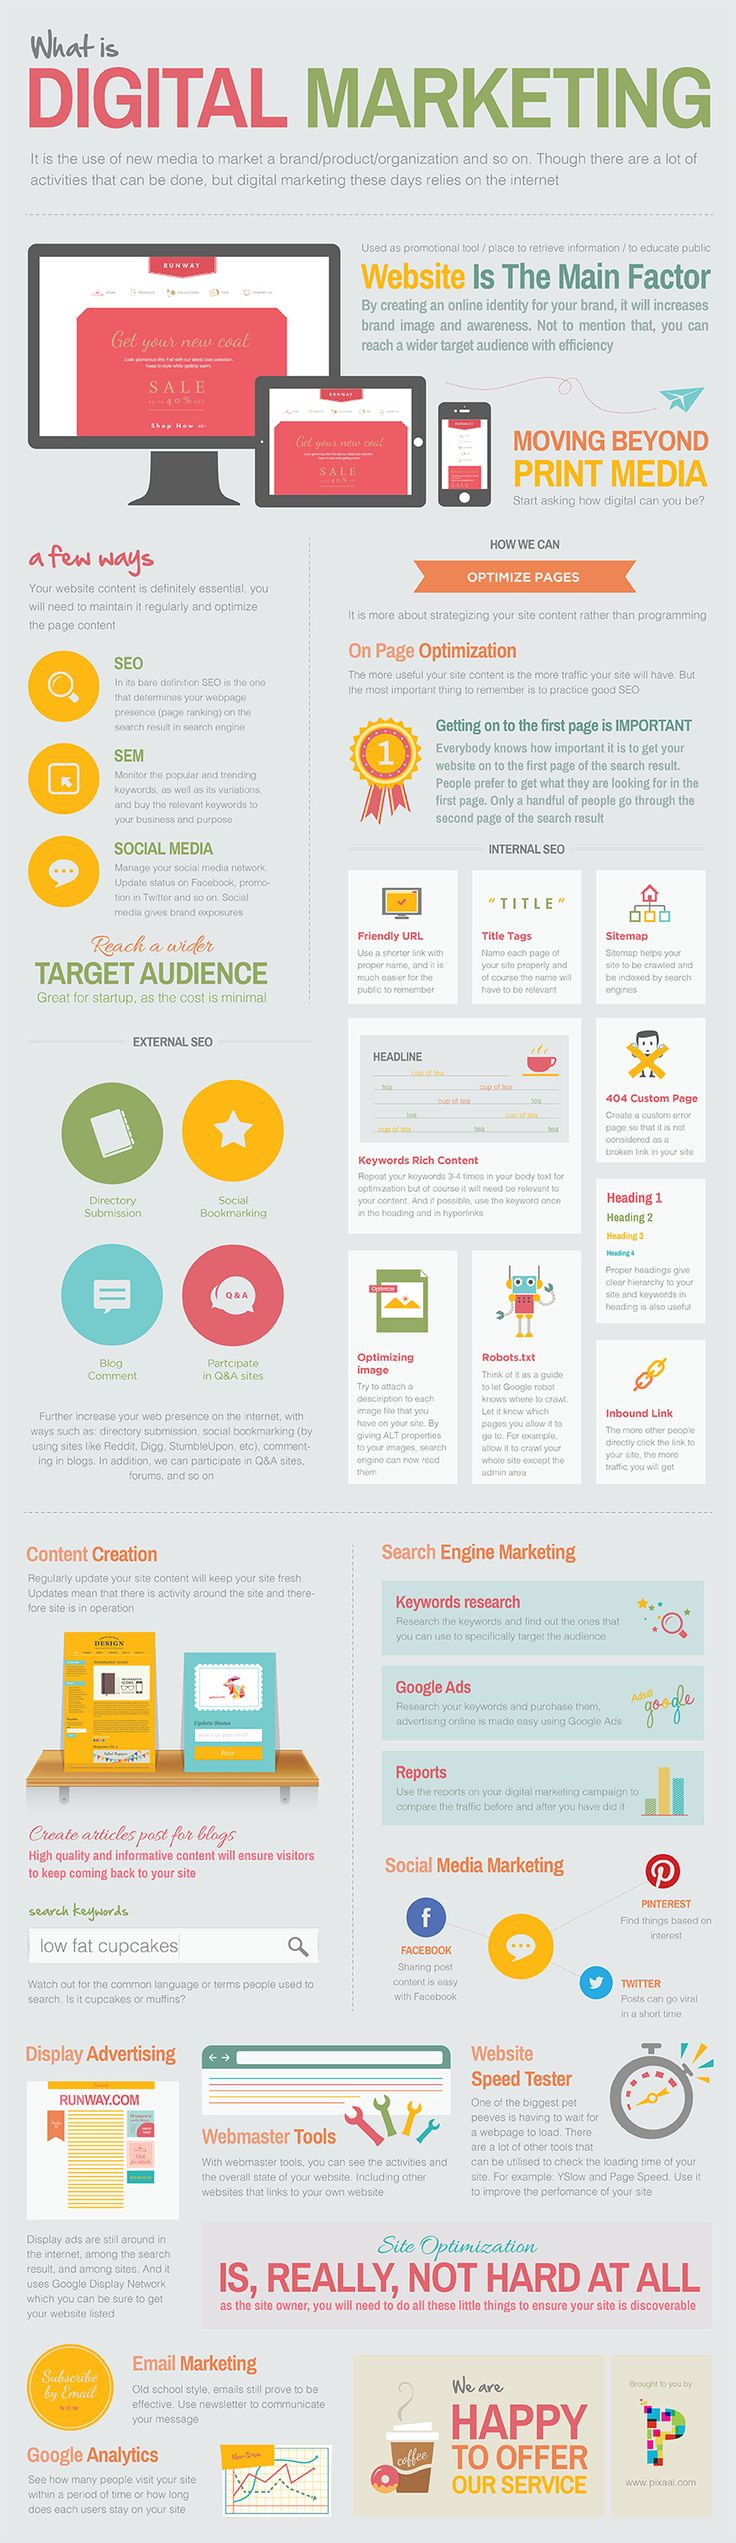 What Is Digital Marketing: How To Increase Brand Visibility ~ Digital Information World